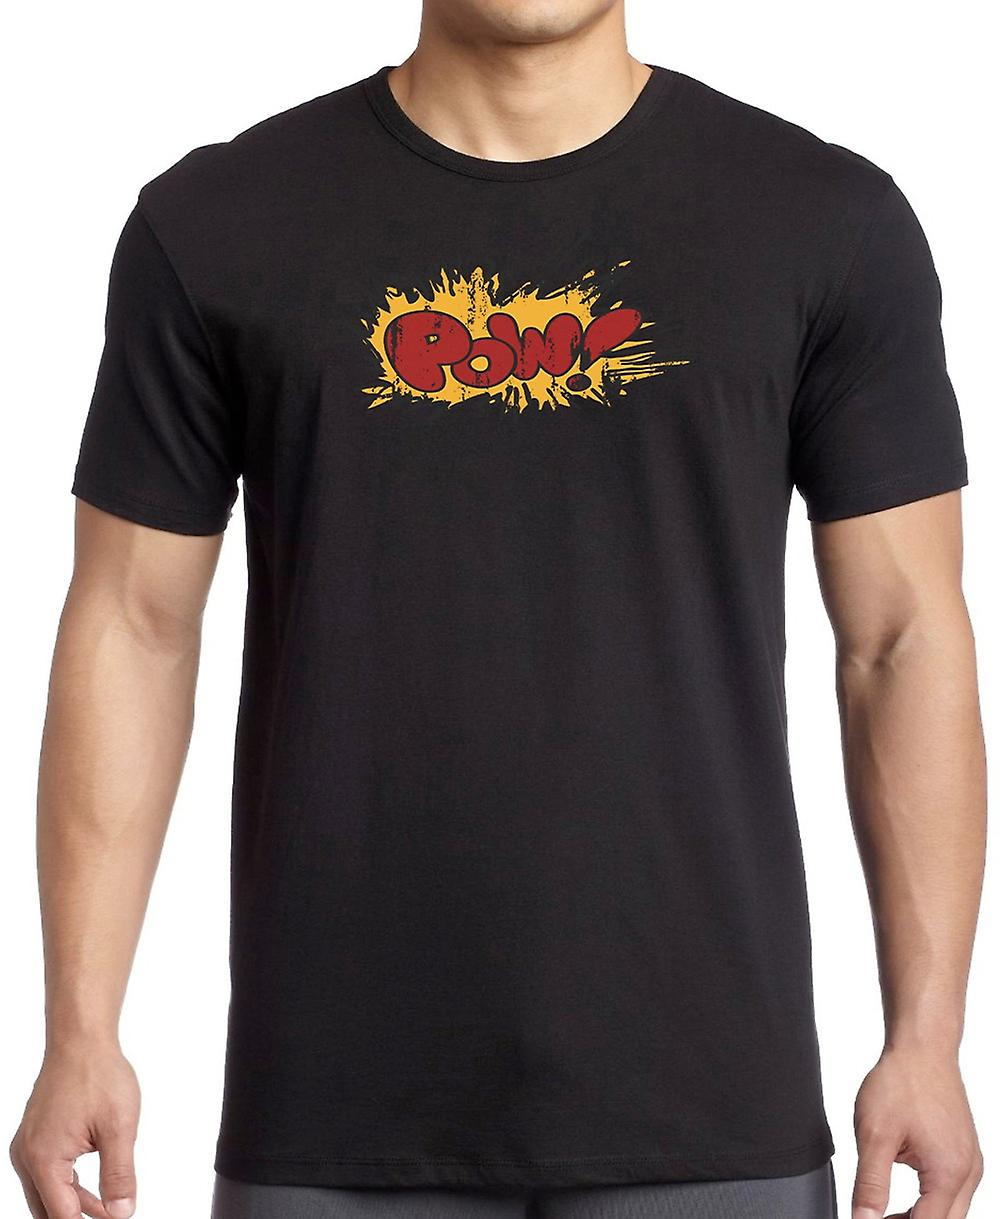 POW - Cartoon explosie - grappige T Shirt